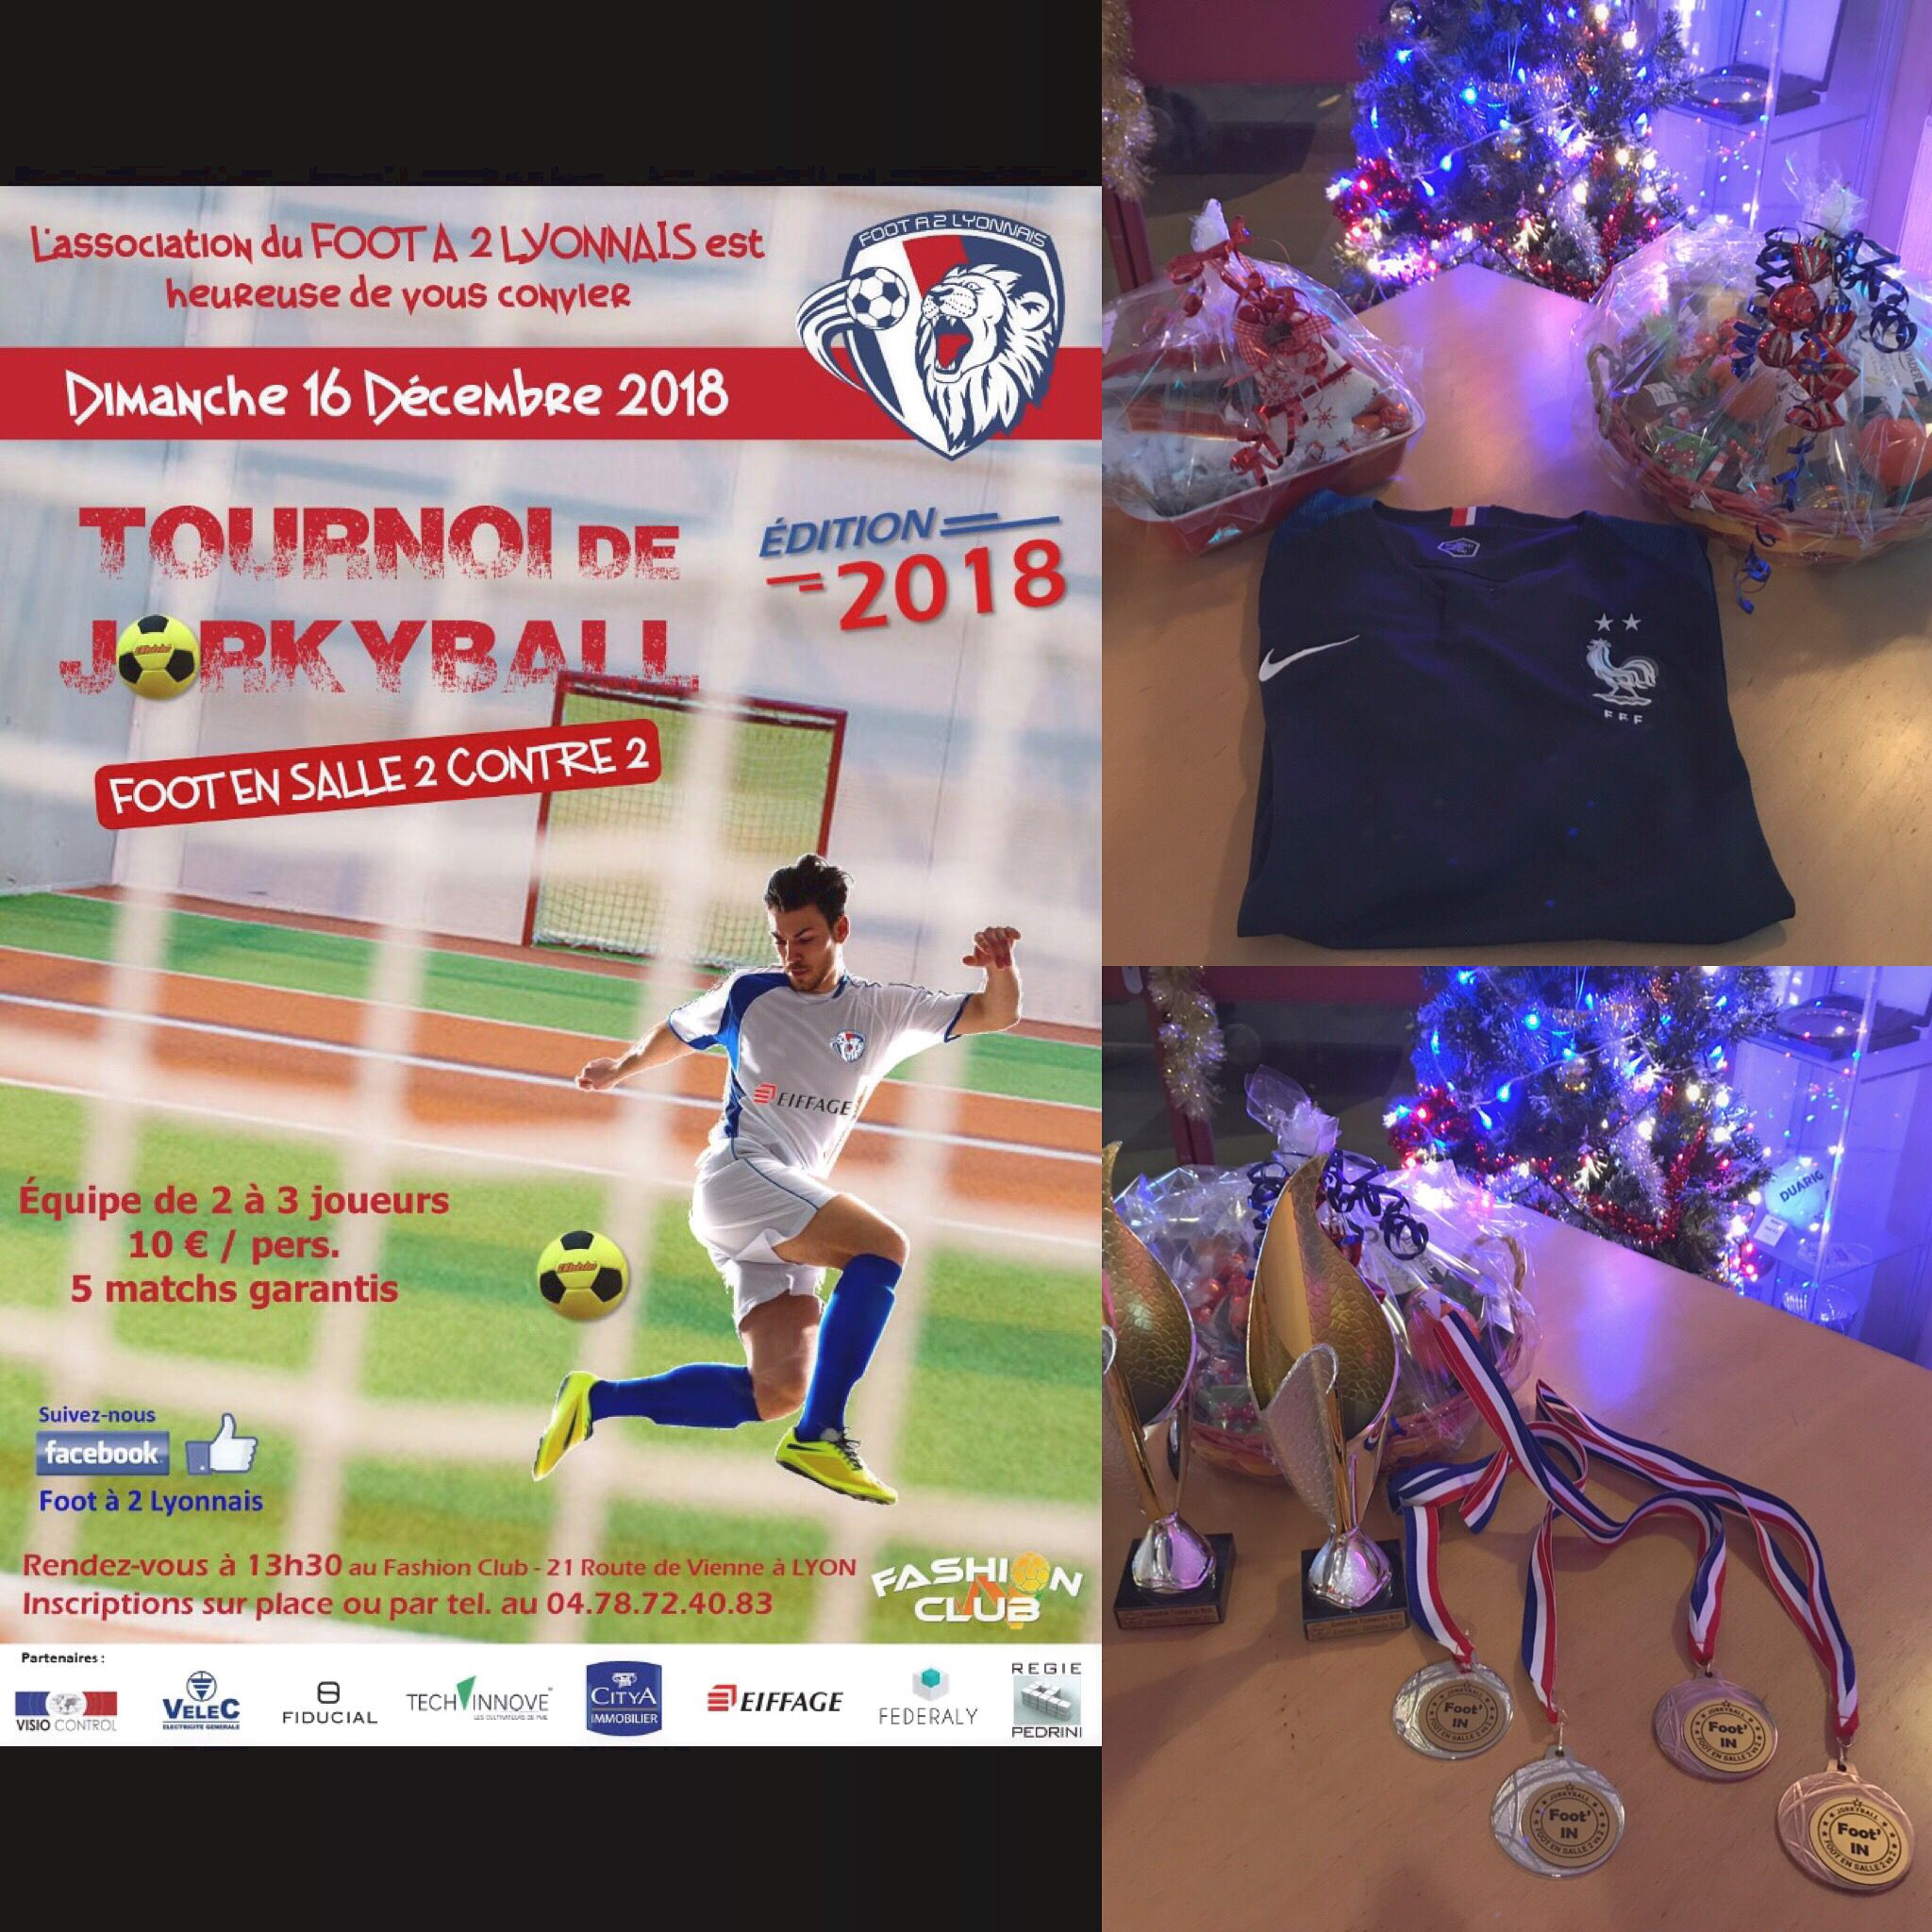 Épinglé par FASHION CLUB JORKYBALL FOOT sur Fashion Club